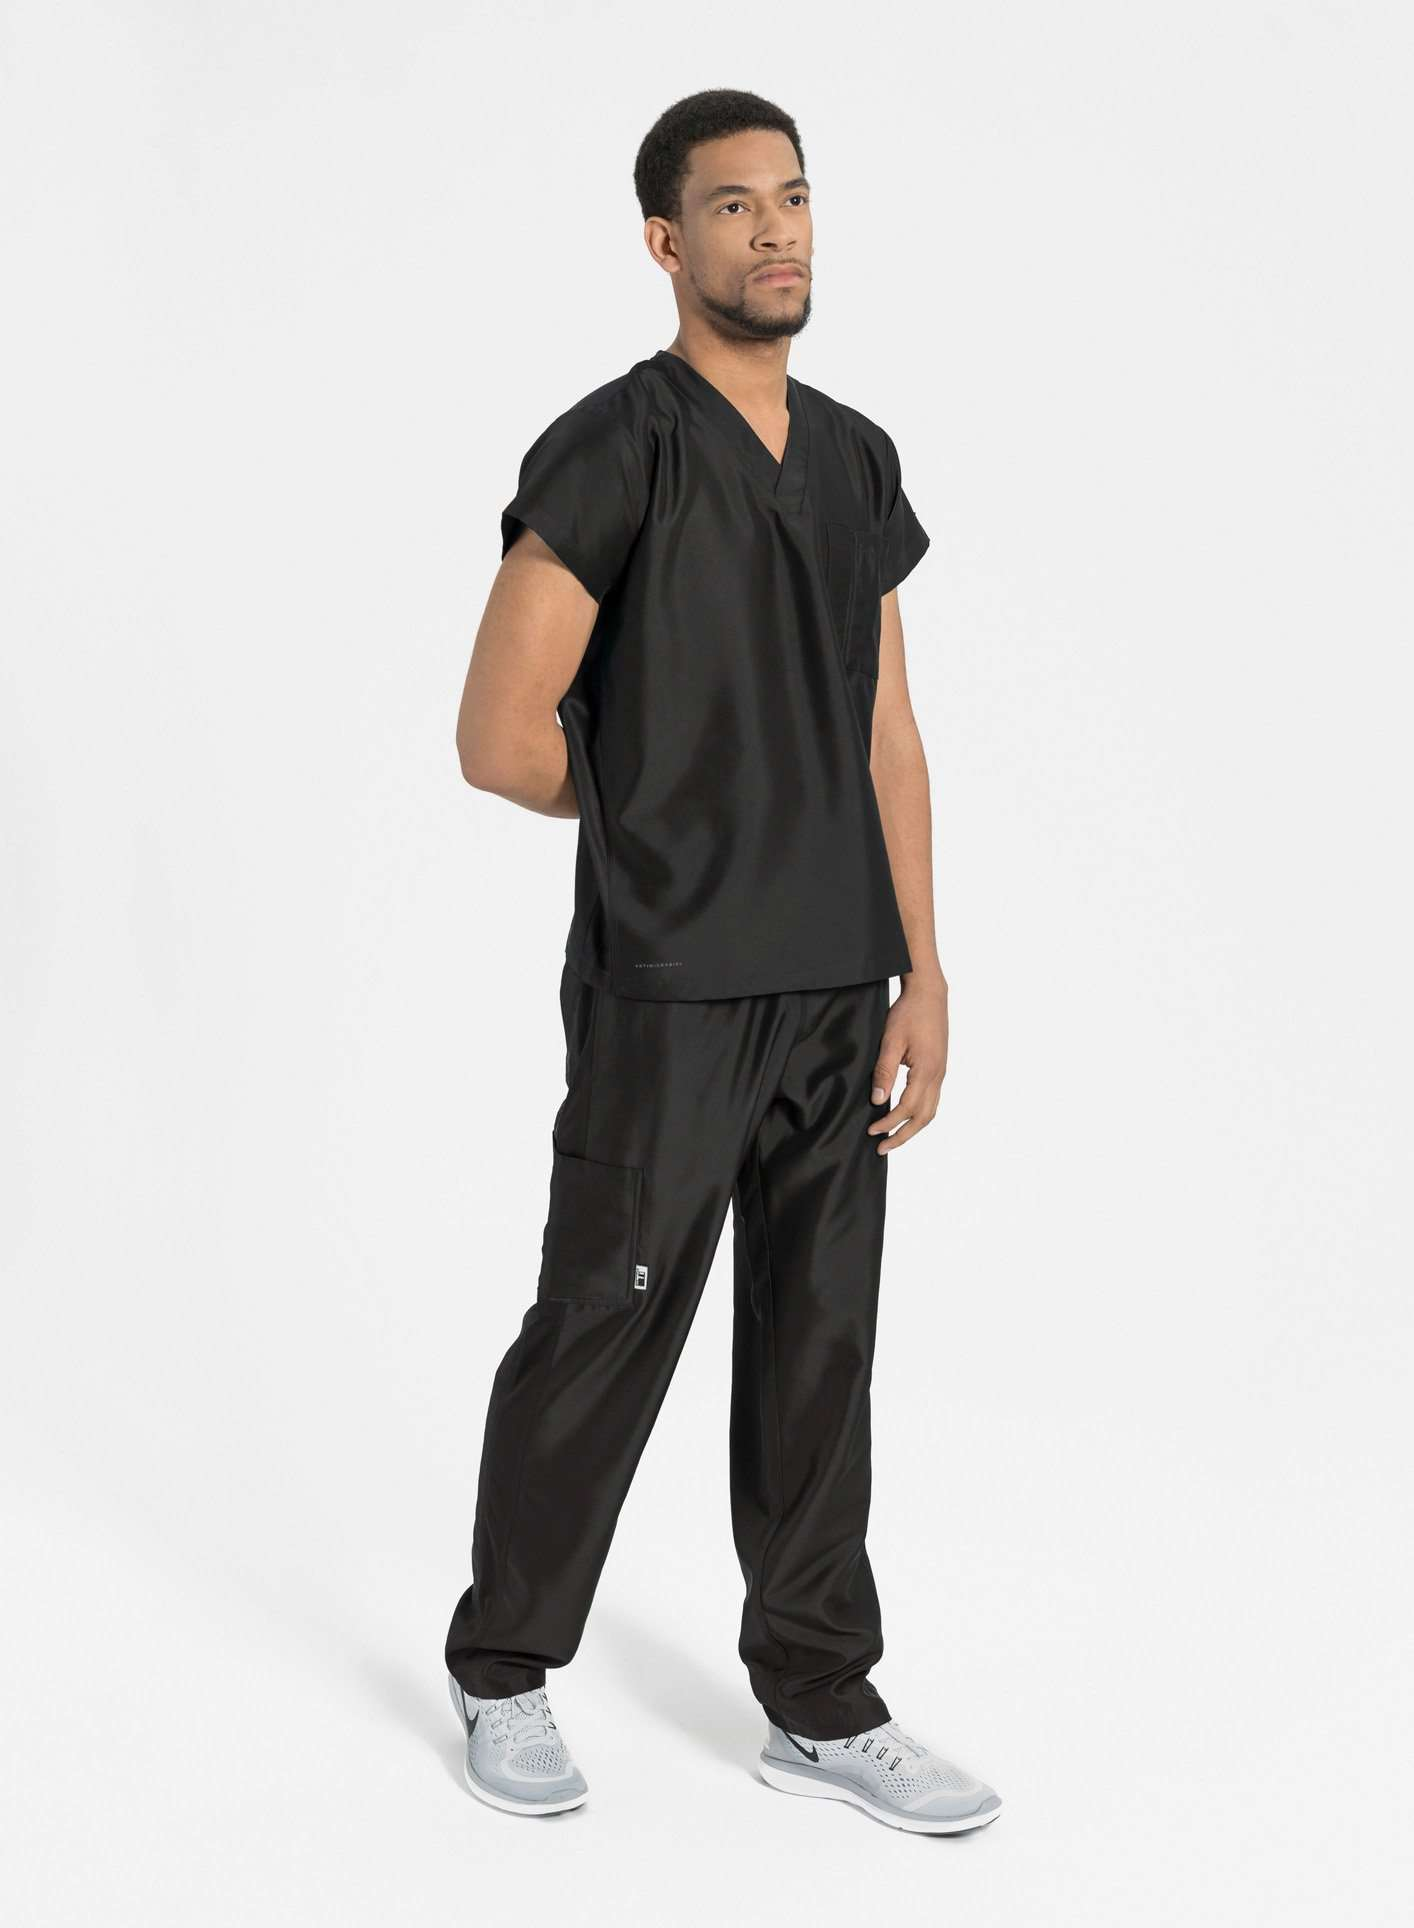 mens Elements short and tall relaxed fit scrub pants black